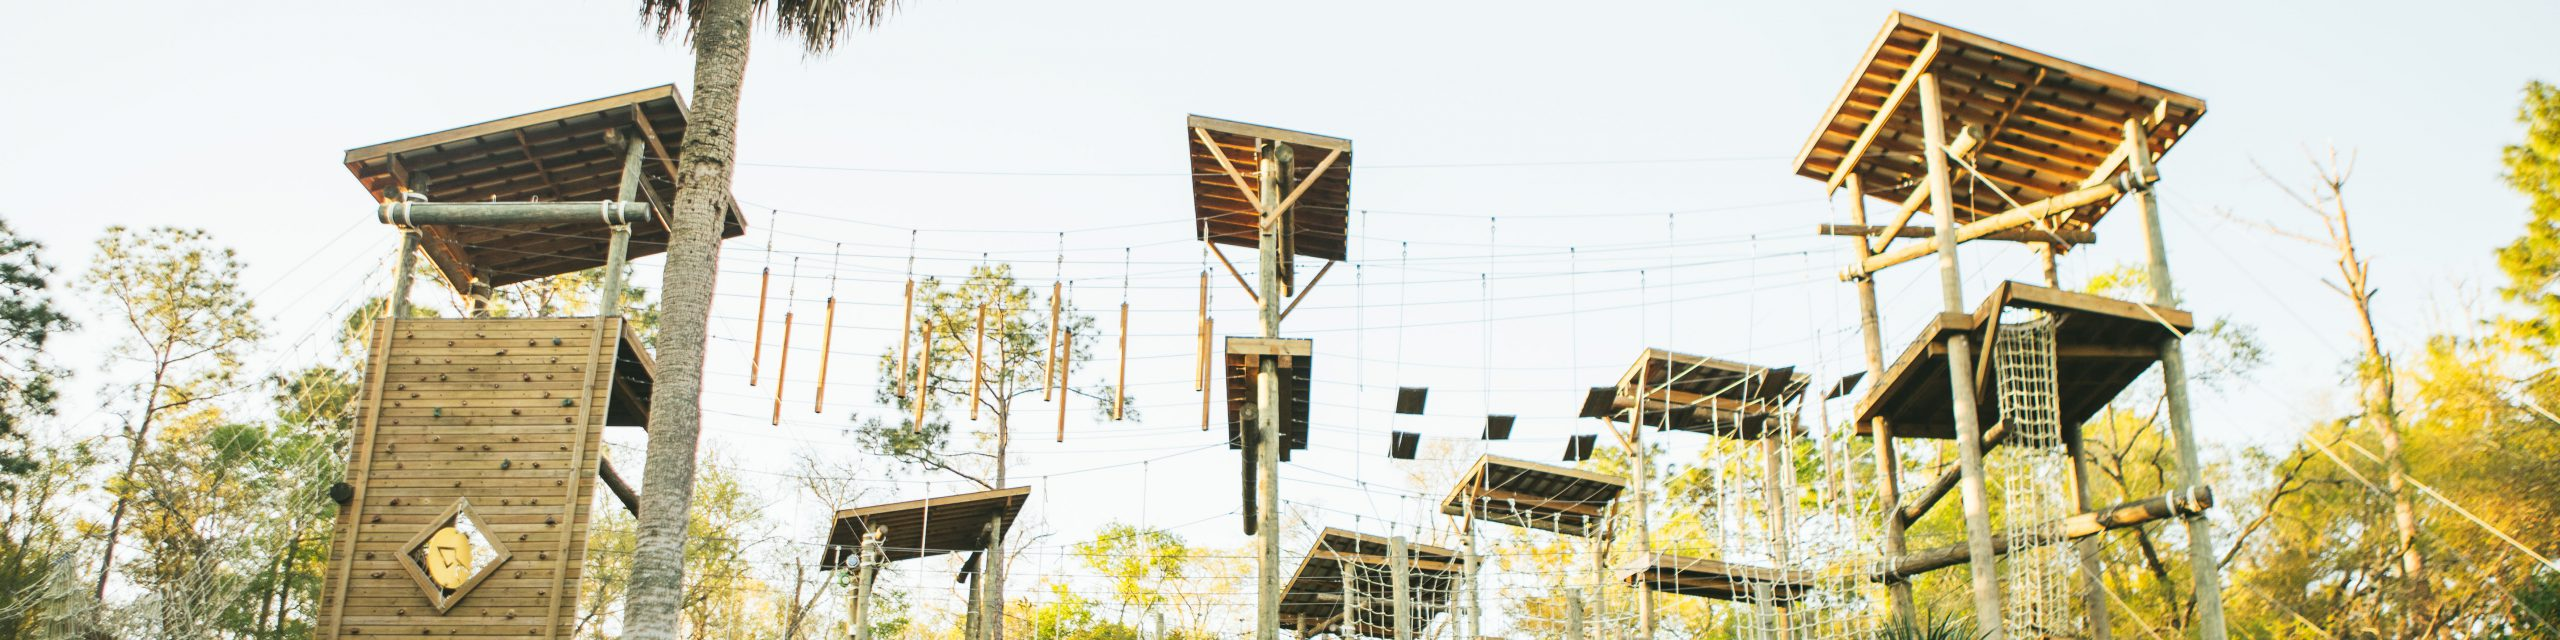 The challenge course over at the Rez